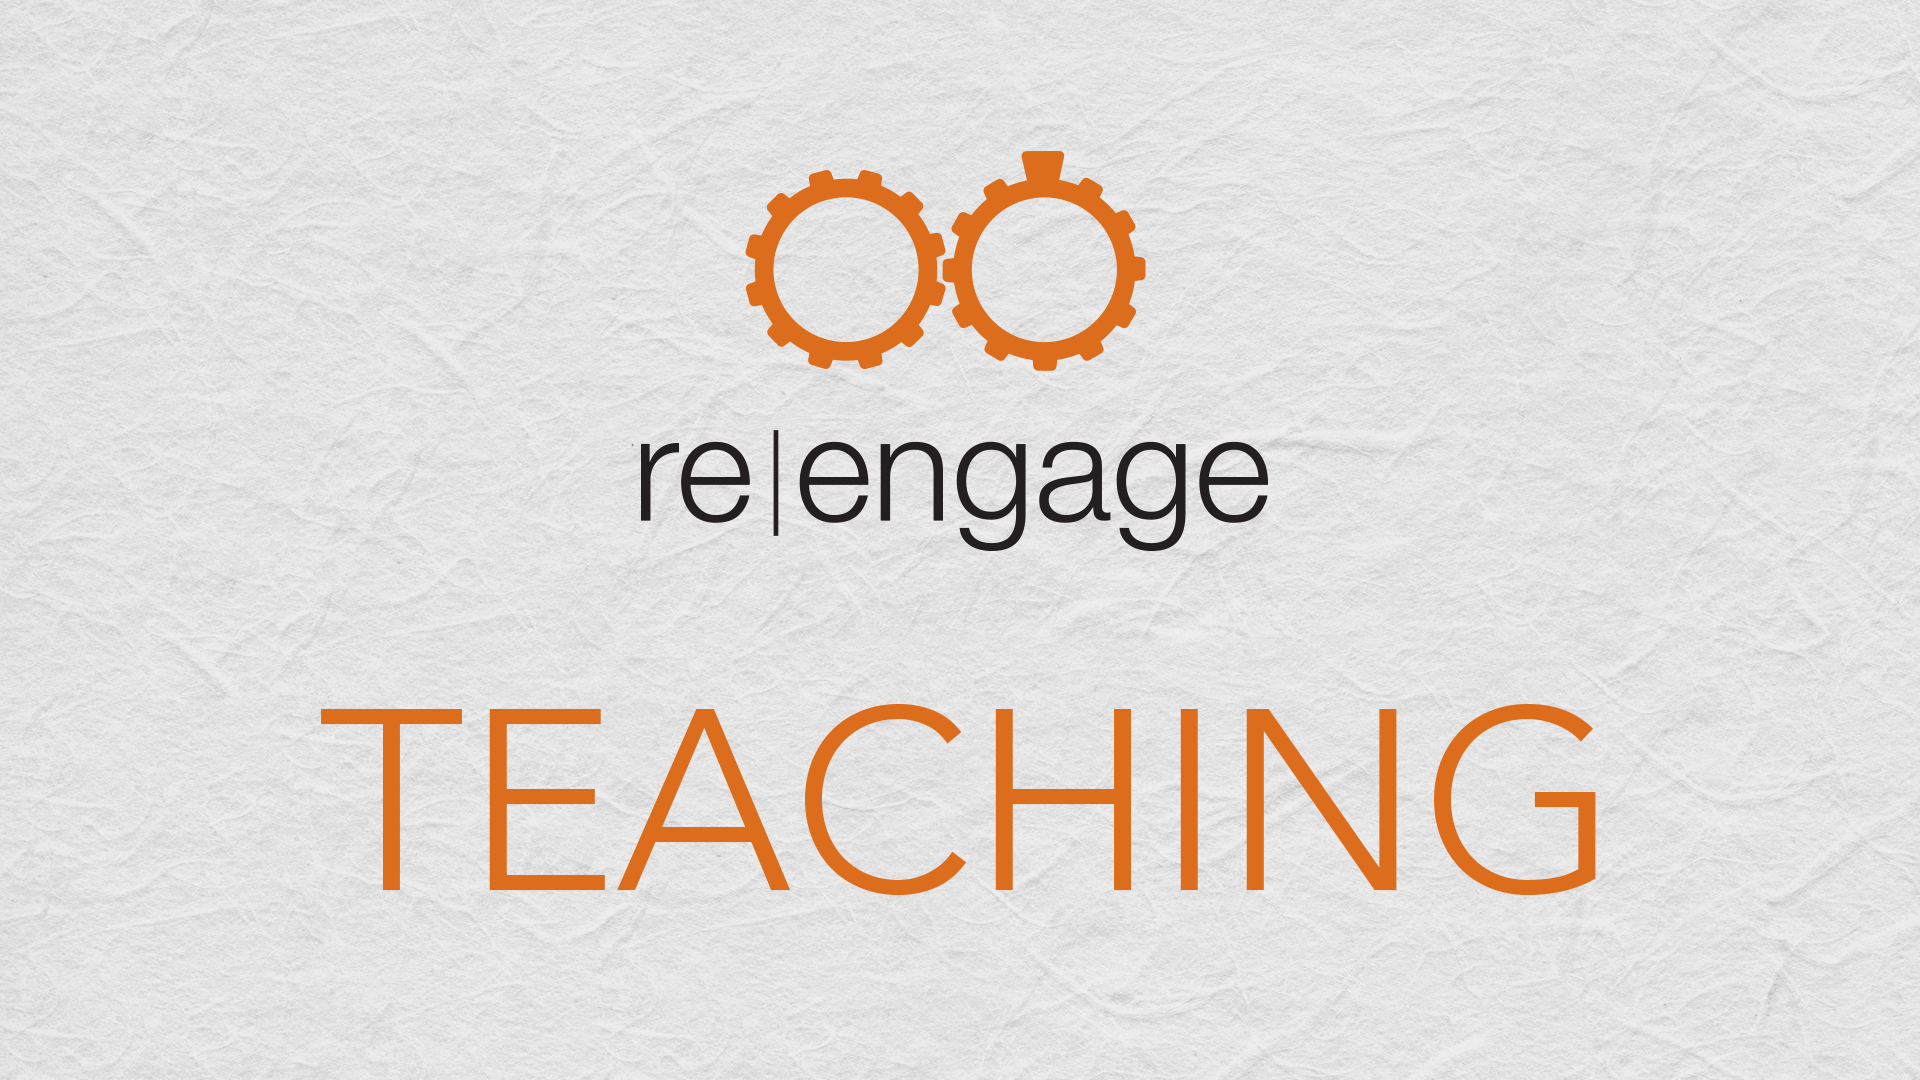 Eric Keaton - re|engage Teaching